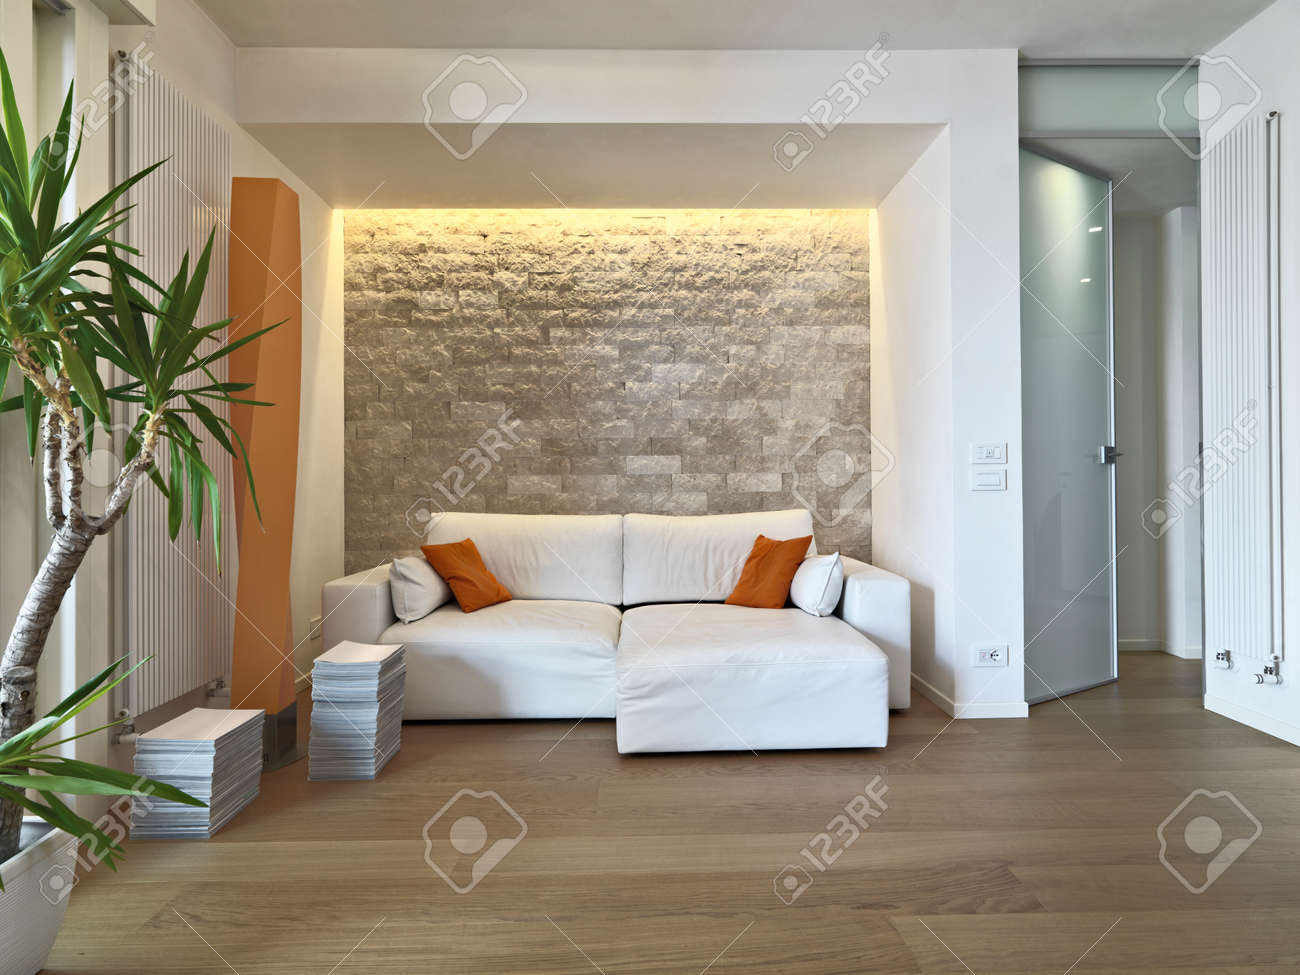 interior view of modern livig room in foreground the leather sofa with orange pillow and wood floor Standard-Bild - 49591539